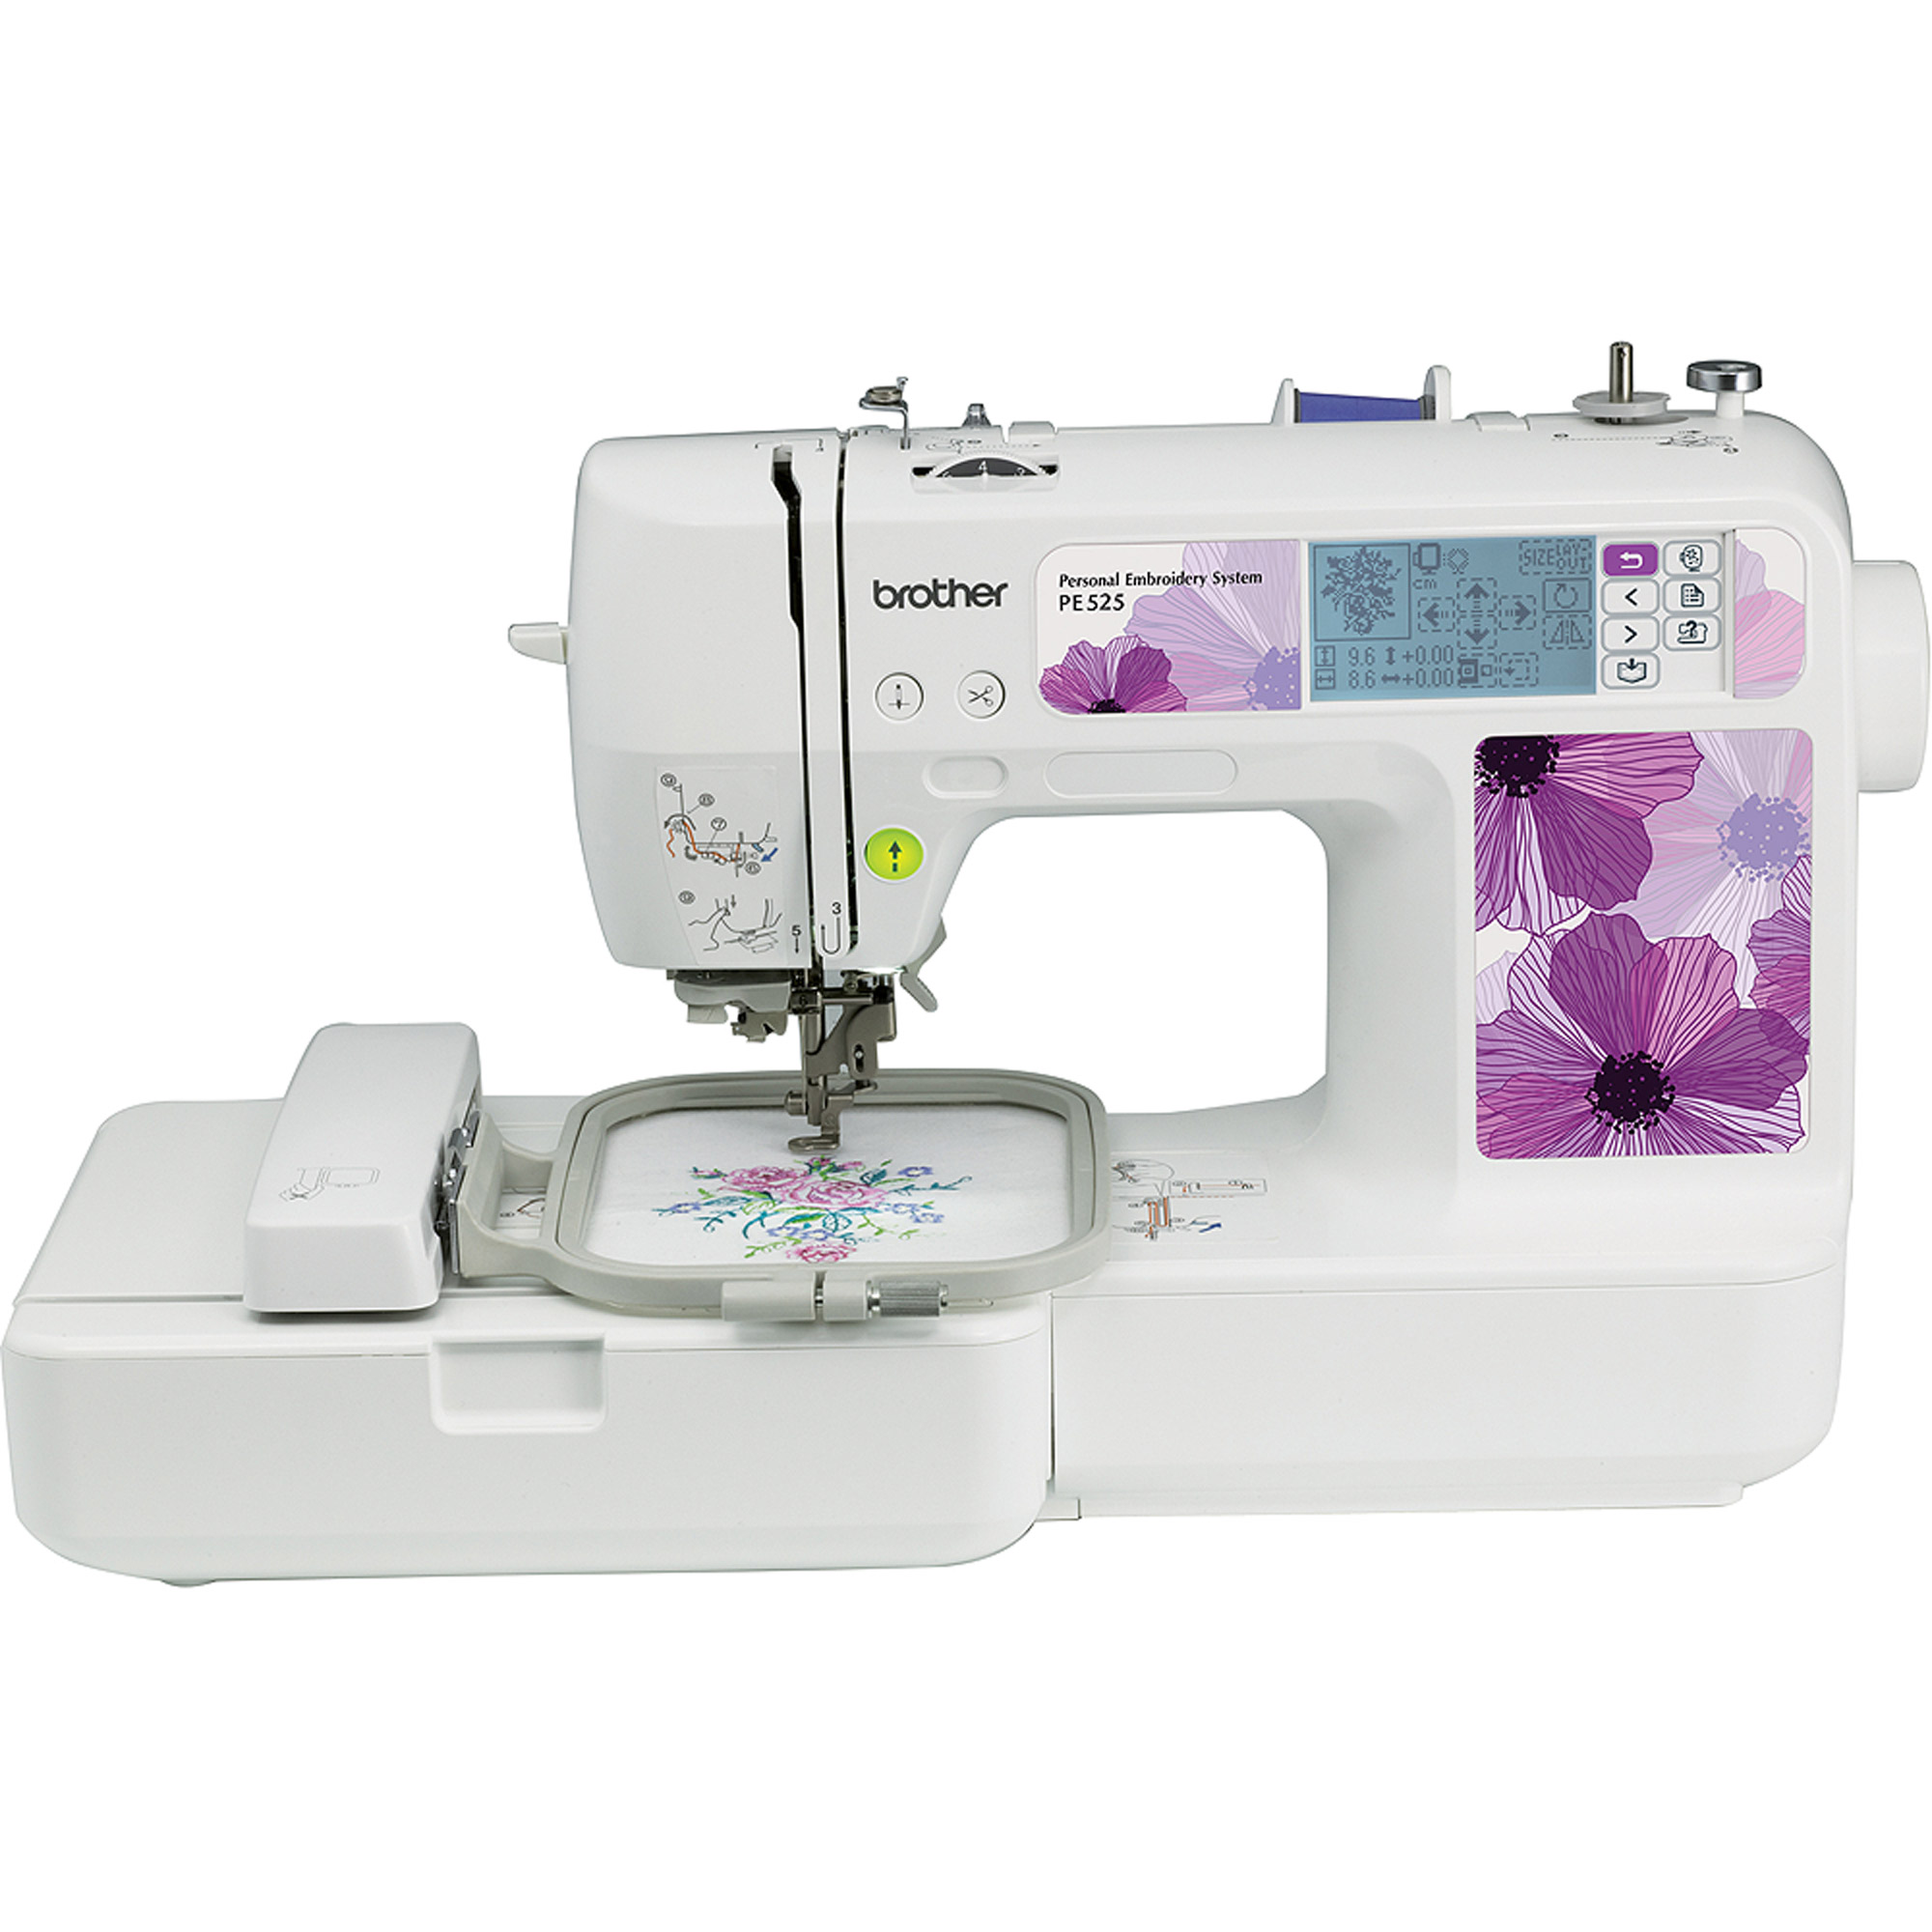 Brother PE525 Embroidery Machine with 70 Built-In Designs and 120 Frame Patterns